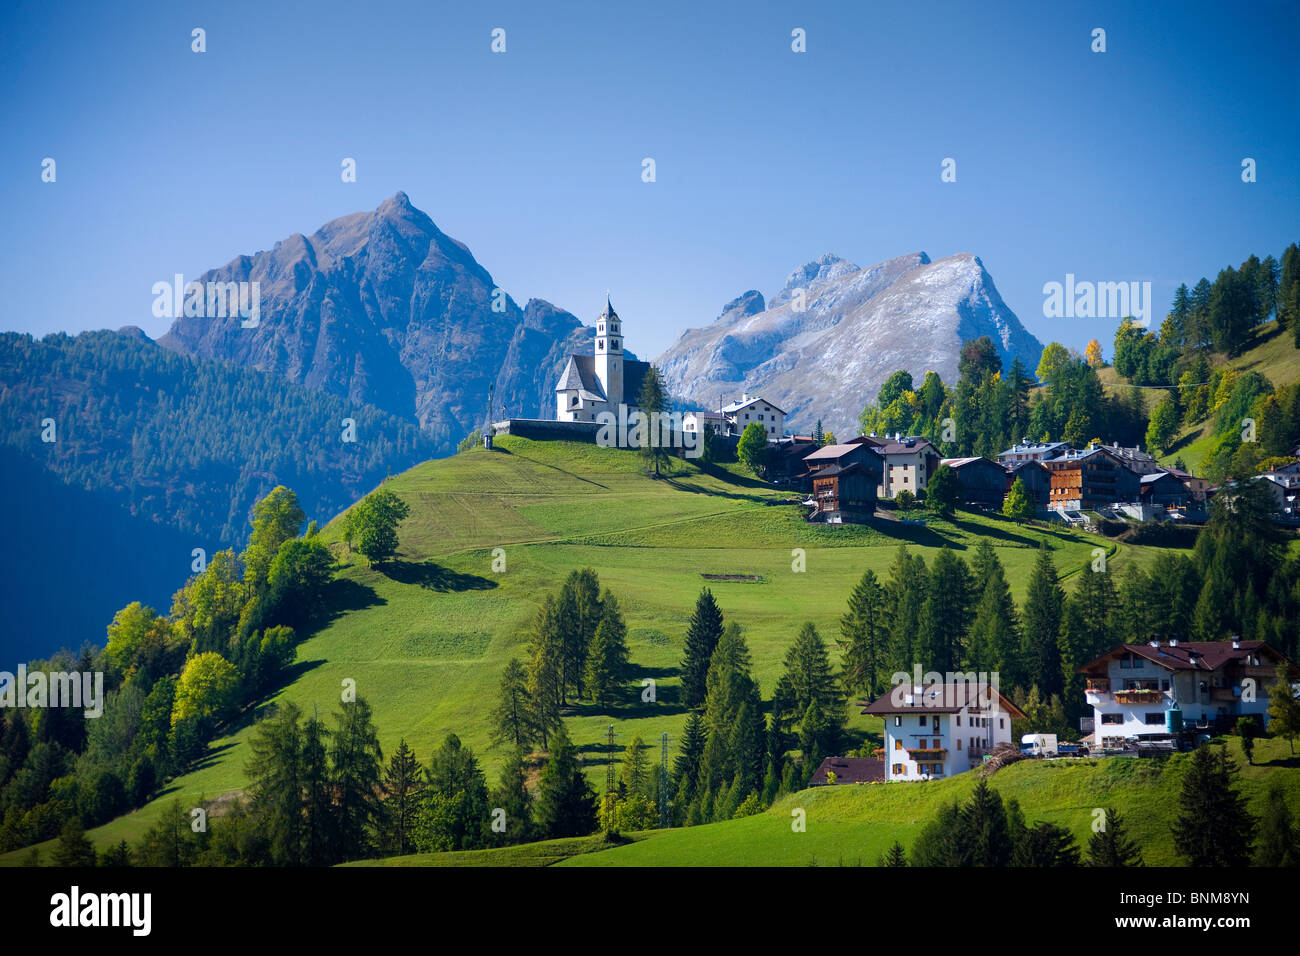 Alpes Italie Veneto Dolomites Cadore hill wood forest meadows les jours fériés, Photo Stock